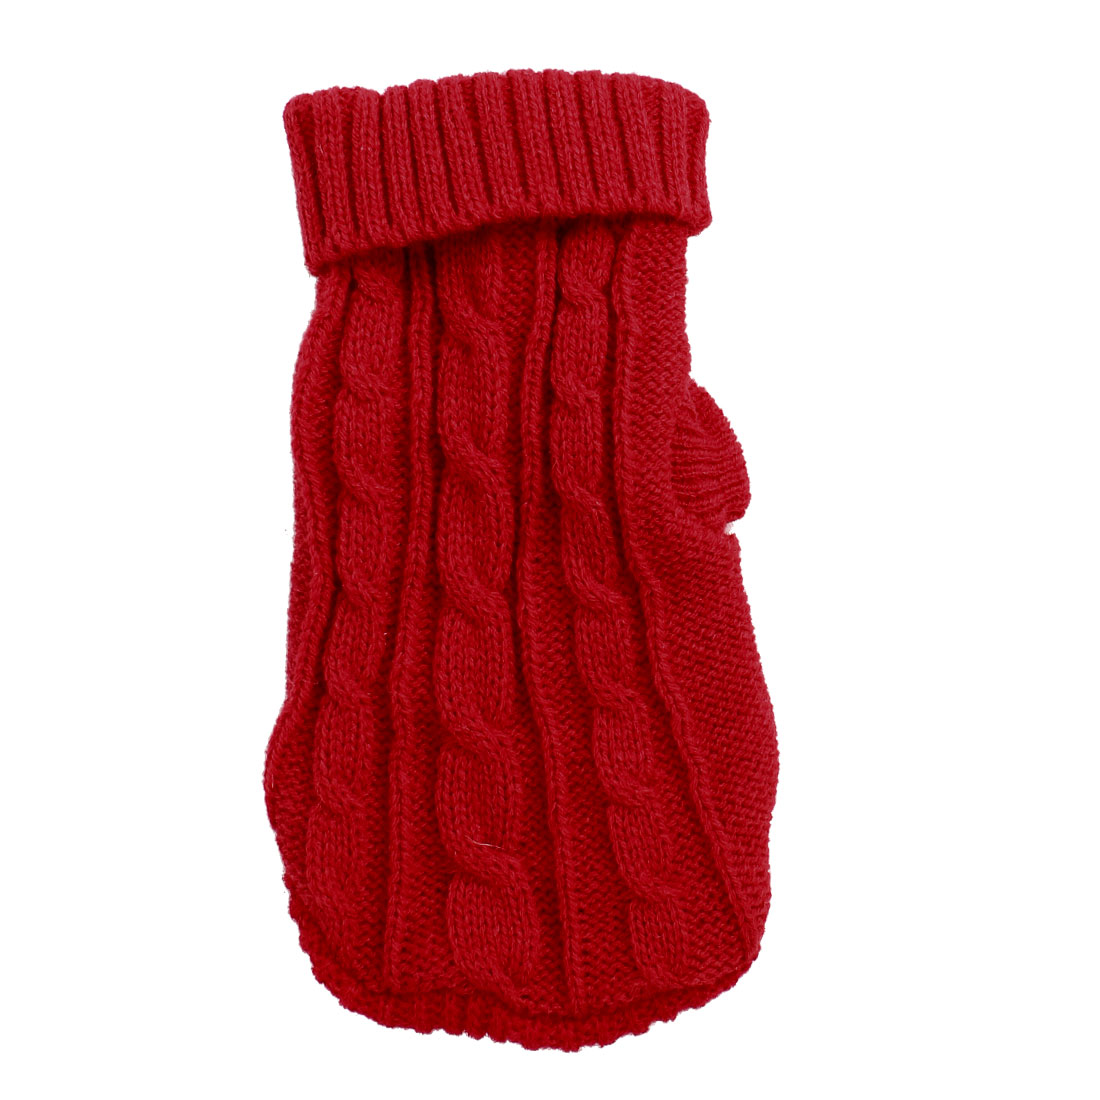 Unique Bargains Winter Warm Red Cable Knit Turtleneck Pet Dog Chihuahua Apparel Sweater Size 6